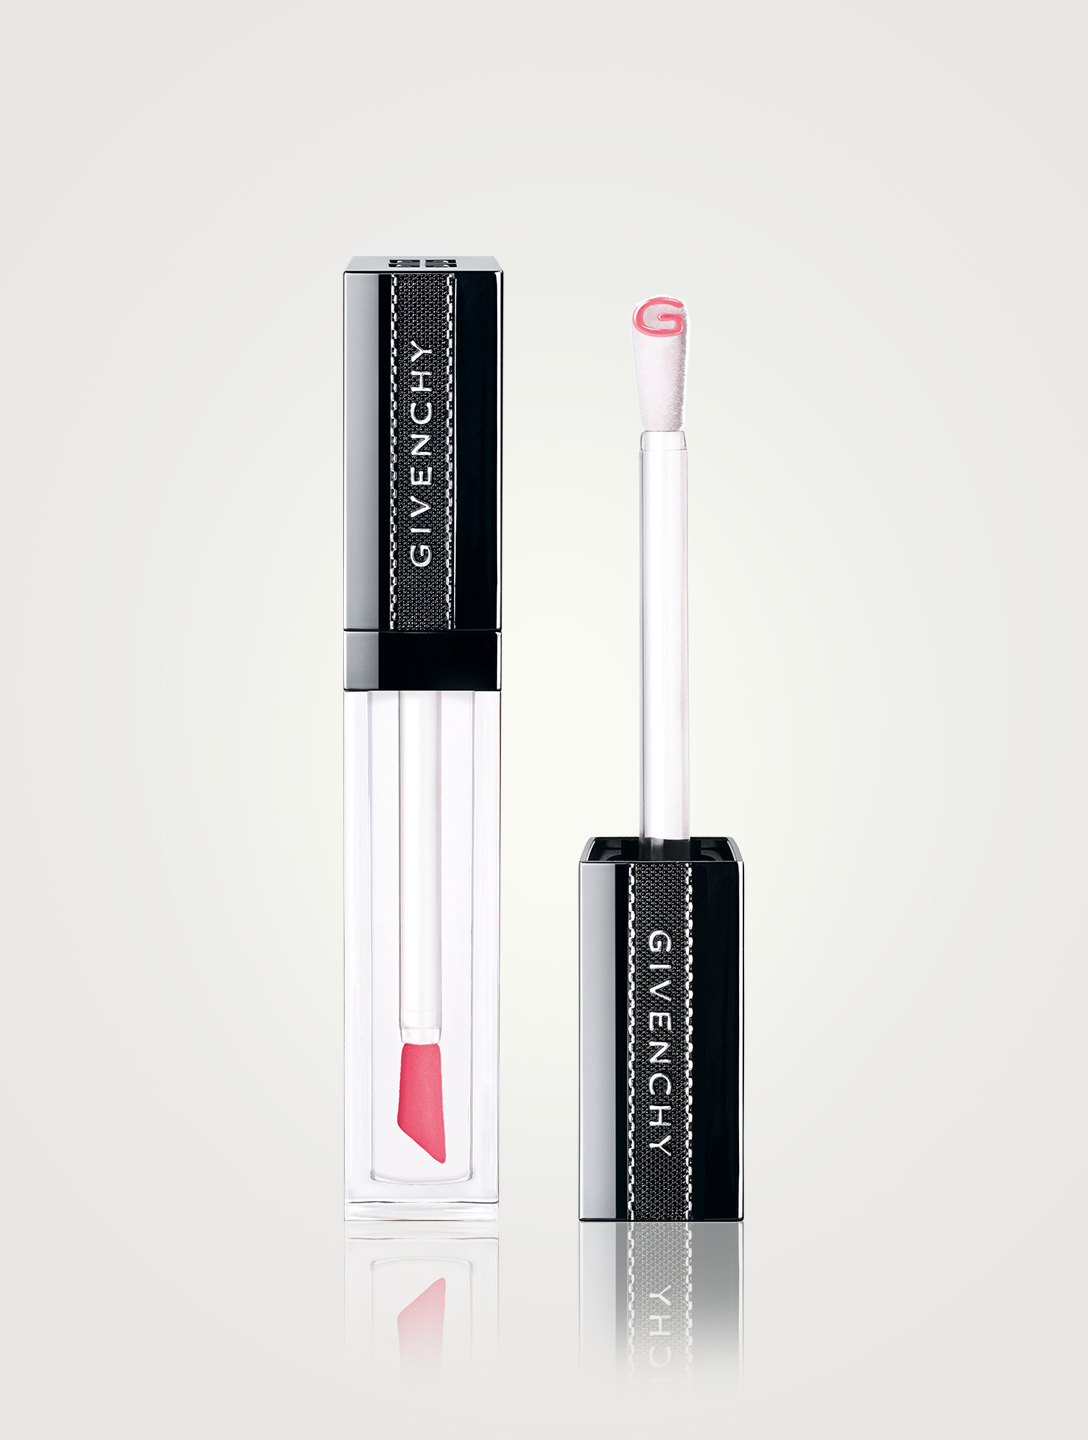 GIVENCHY Gloss Interdit Vinyl Beauty Pink